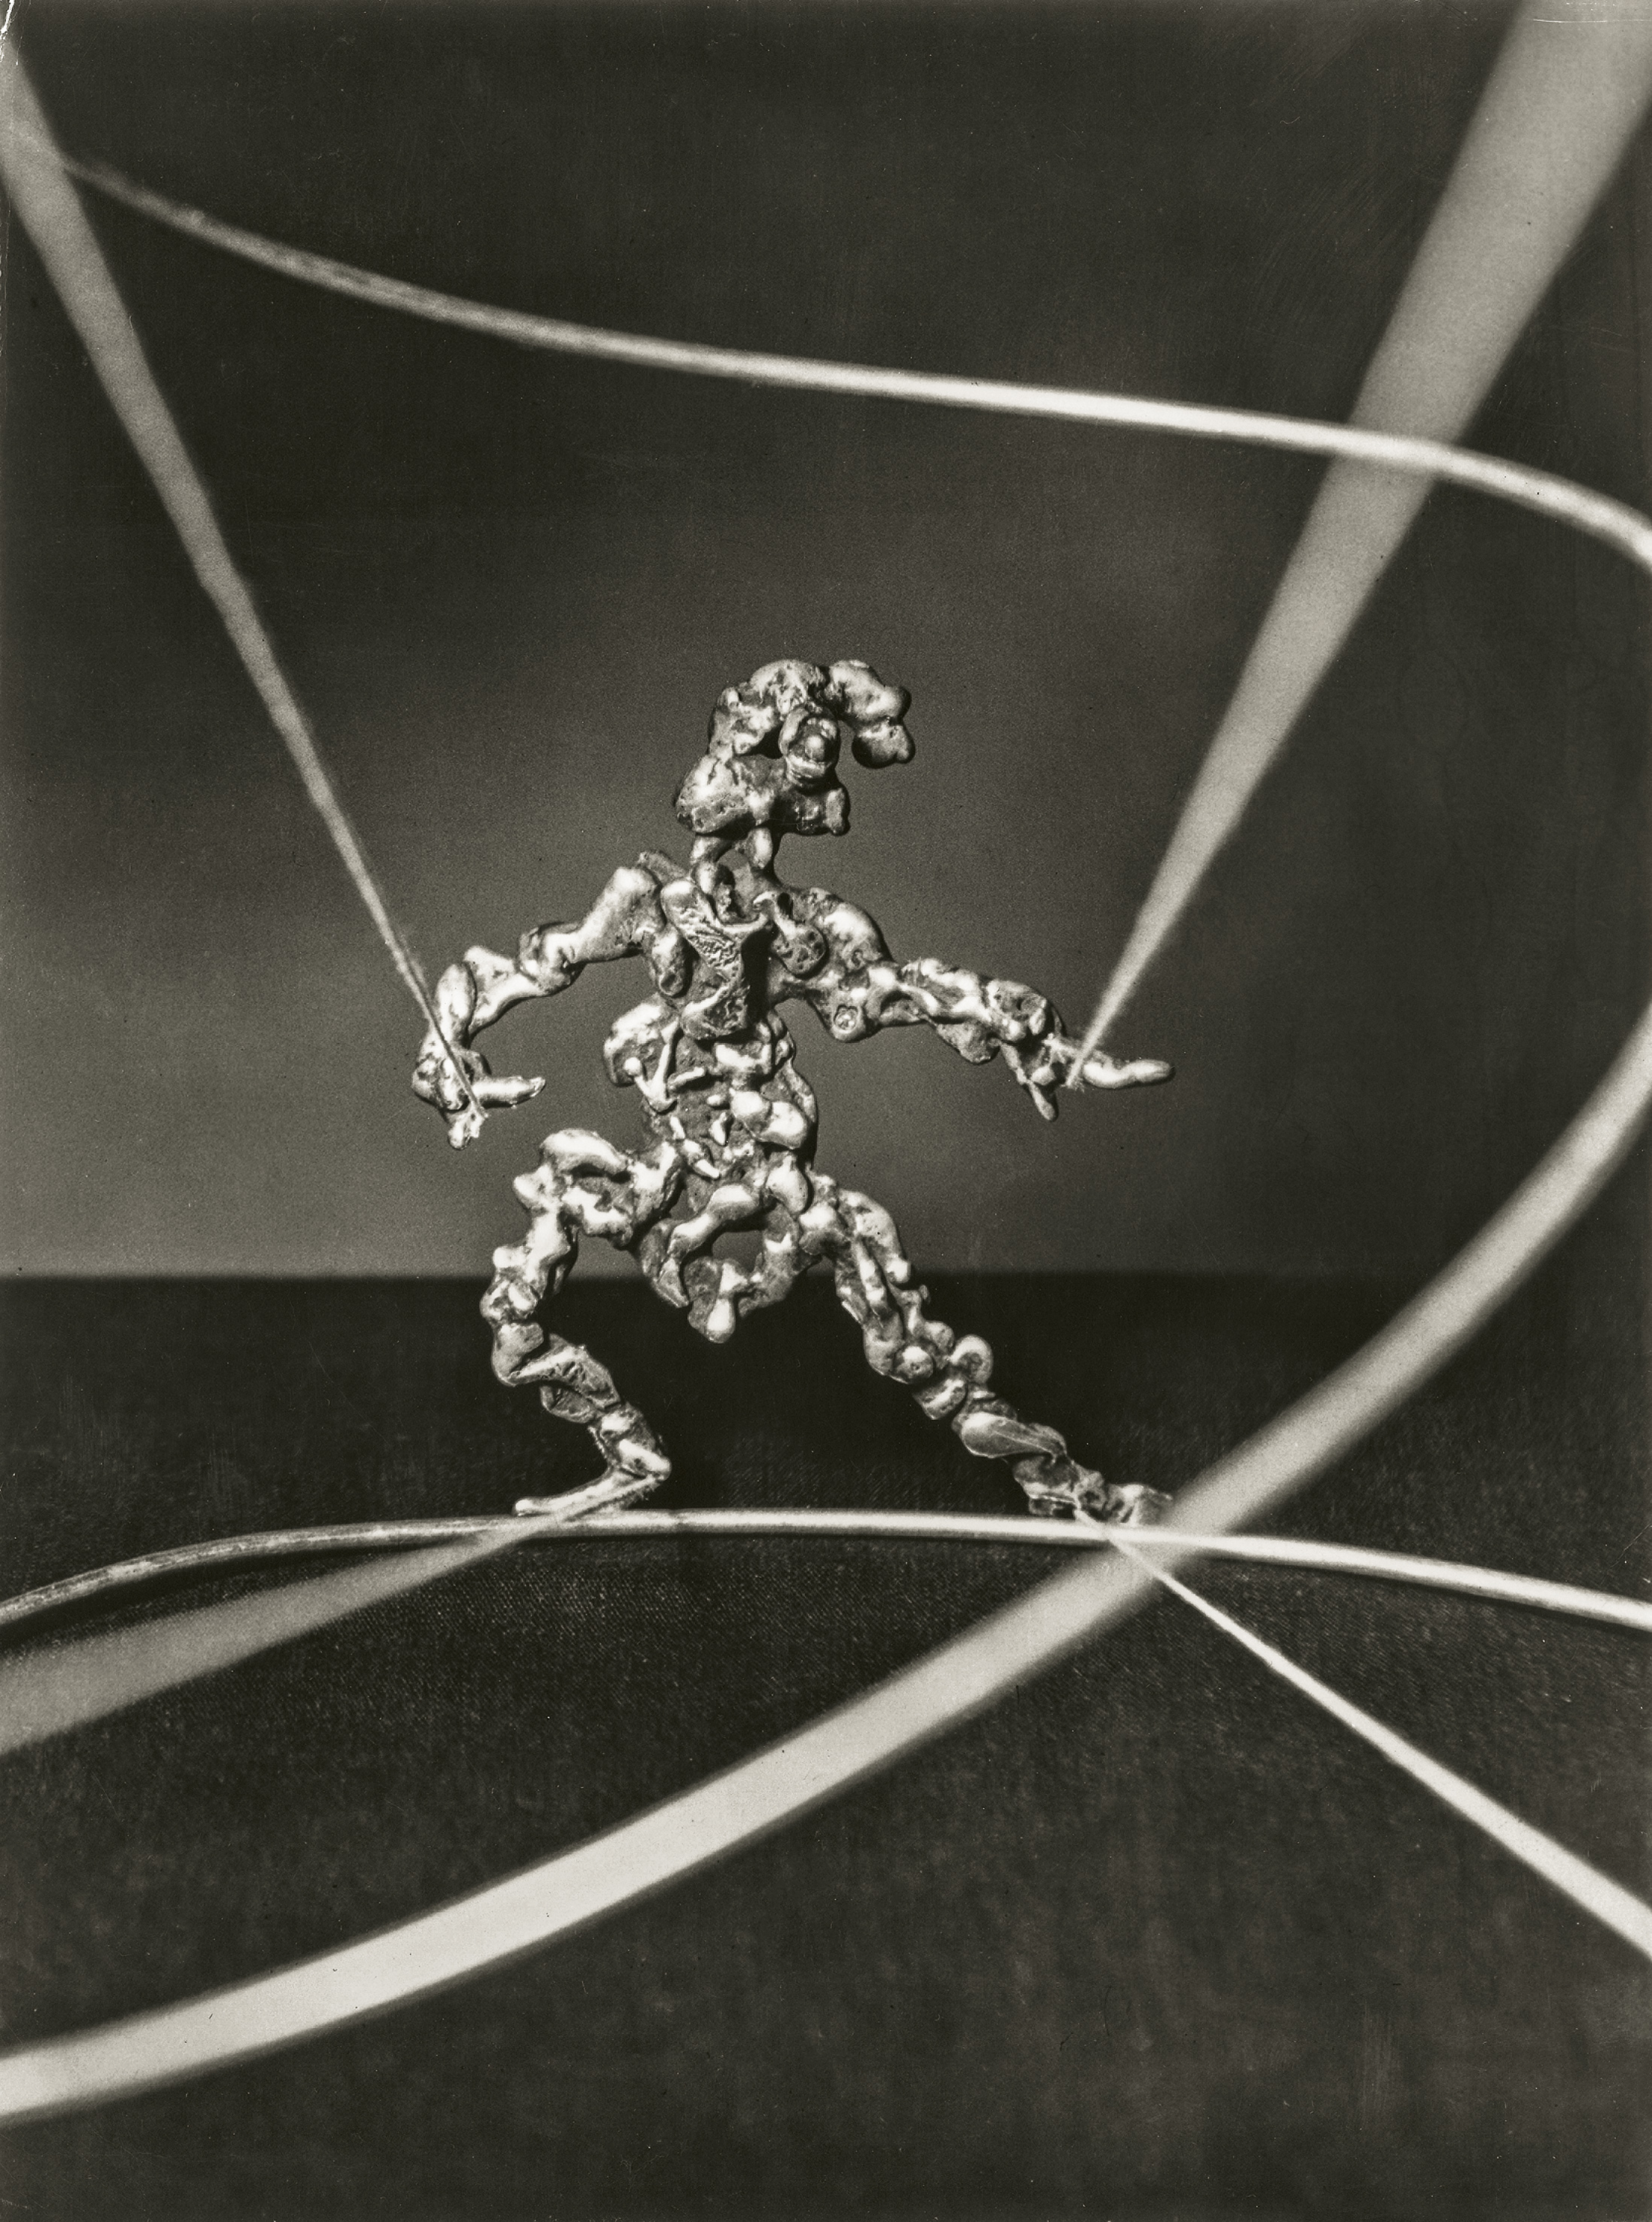 Sam Kramer, Antic Figure, hanger, circa 1946. Fotografie door Marvin Koner, courtesy Marc McDonald©